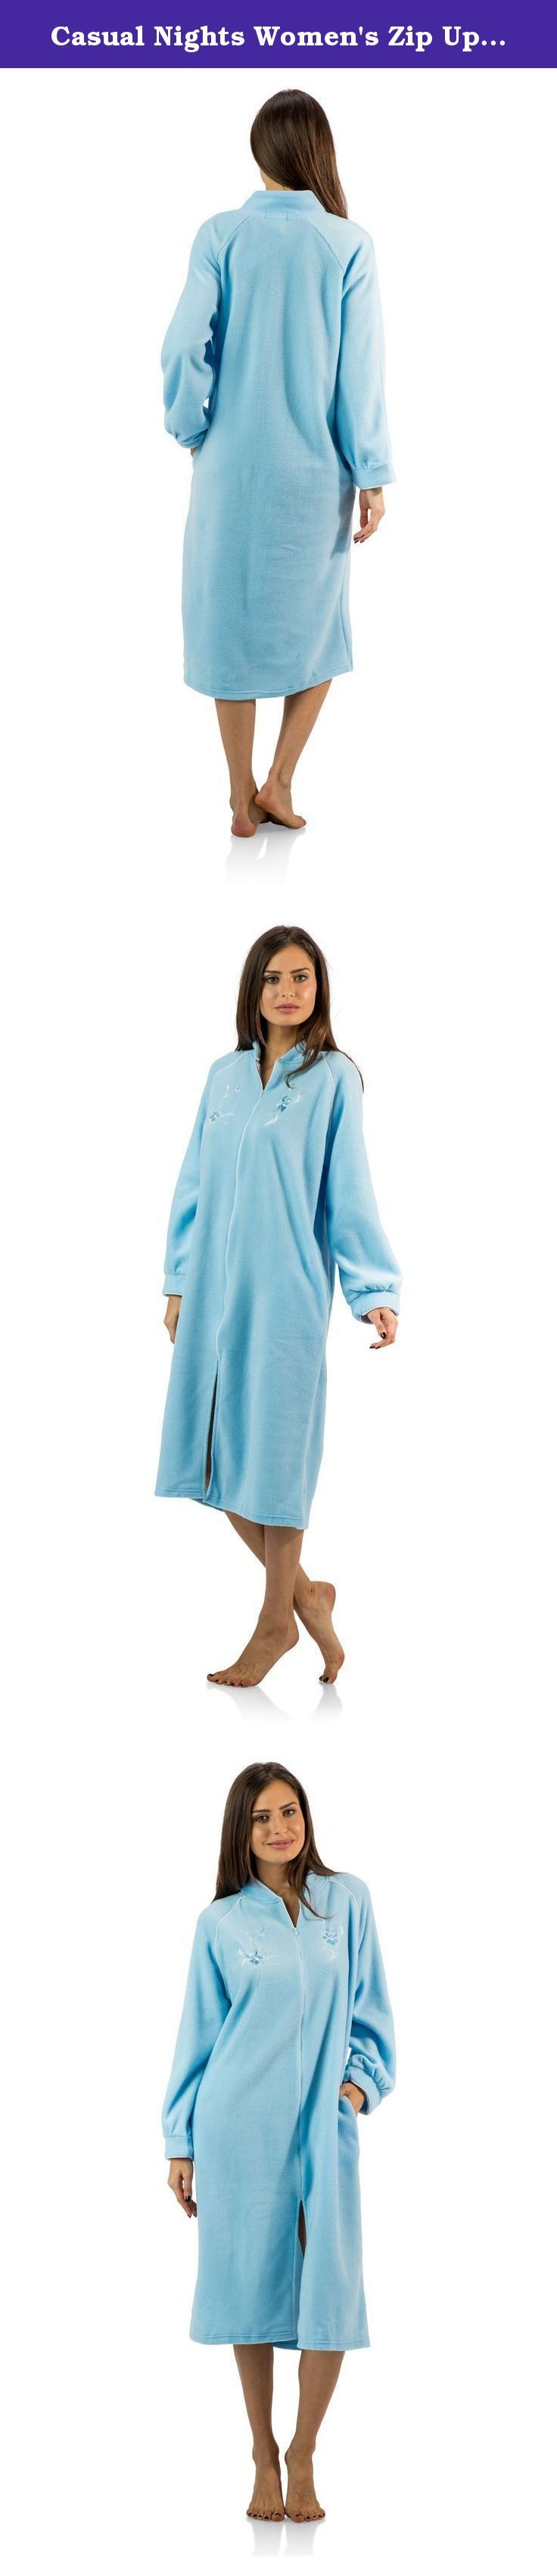 "Casual Nights Women's Zip Up Front Long Fleece Robe House Dress - Blue - Large. This cozy warm Zipper Front Fleece Robe from Casual Nights, Exceptionally lightweight bathrobe made from poly fleece smooth to the touch fabric. Housecoat features; Raglan style long sleeves, piping trim, flower embroidery appliques, front zip closure measures 28.5"" inches makes the shower robe easy to wear. Measures approx. 44"" from shoulder to hem. Perfect for spas, shower houses, dorms, pools, gyms…"